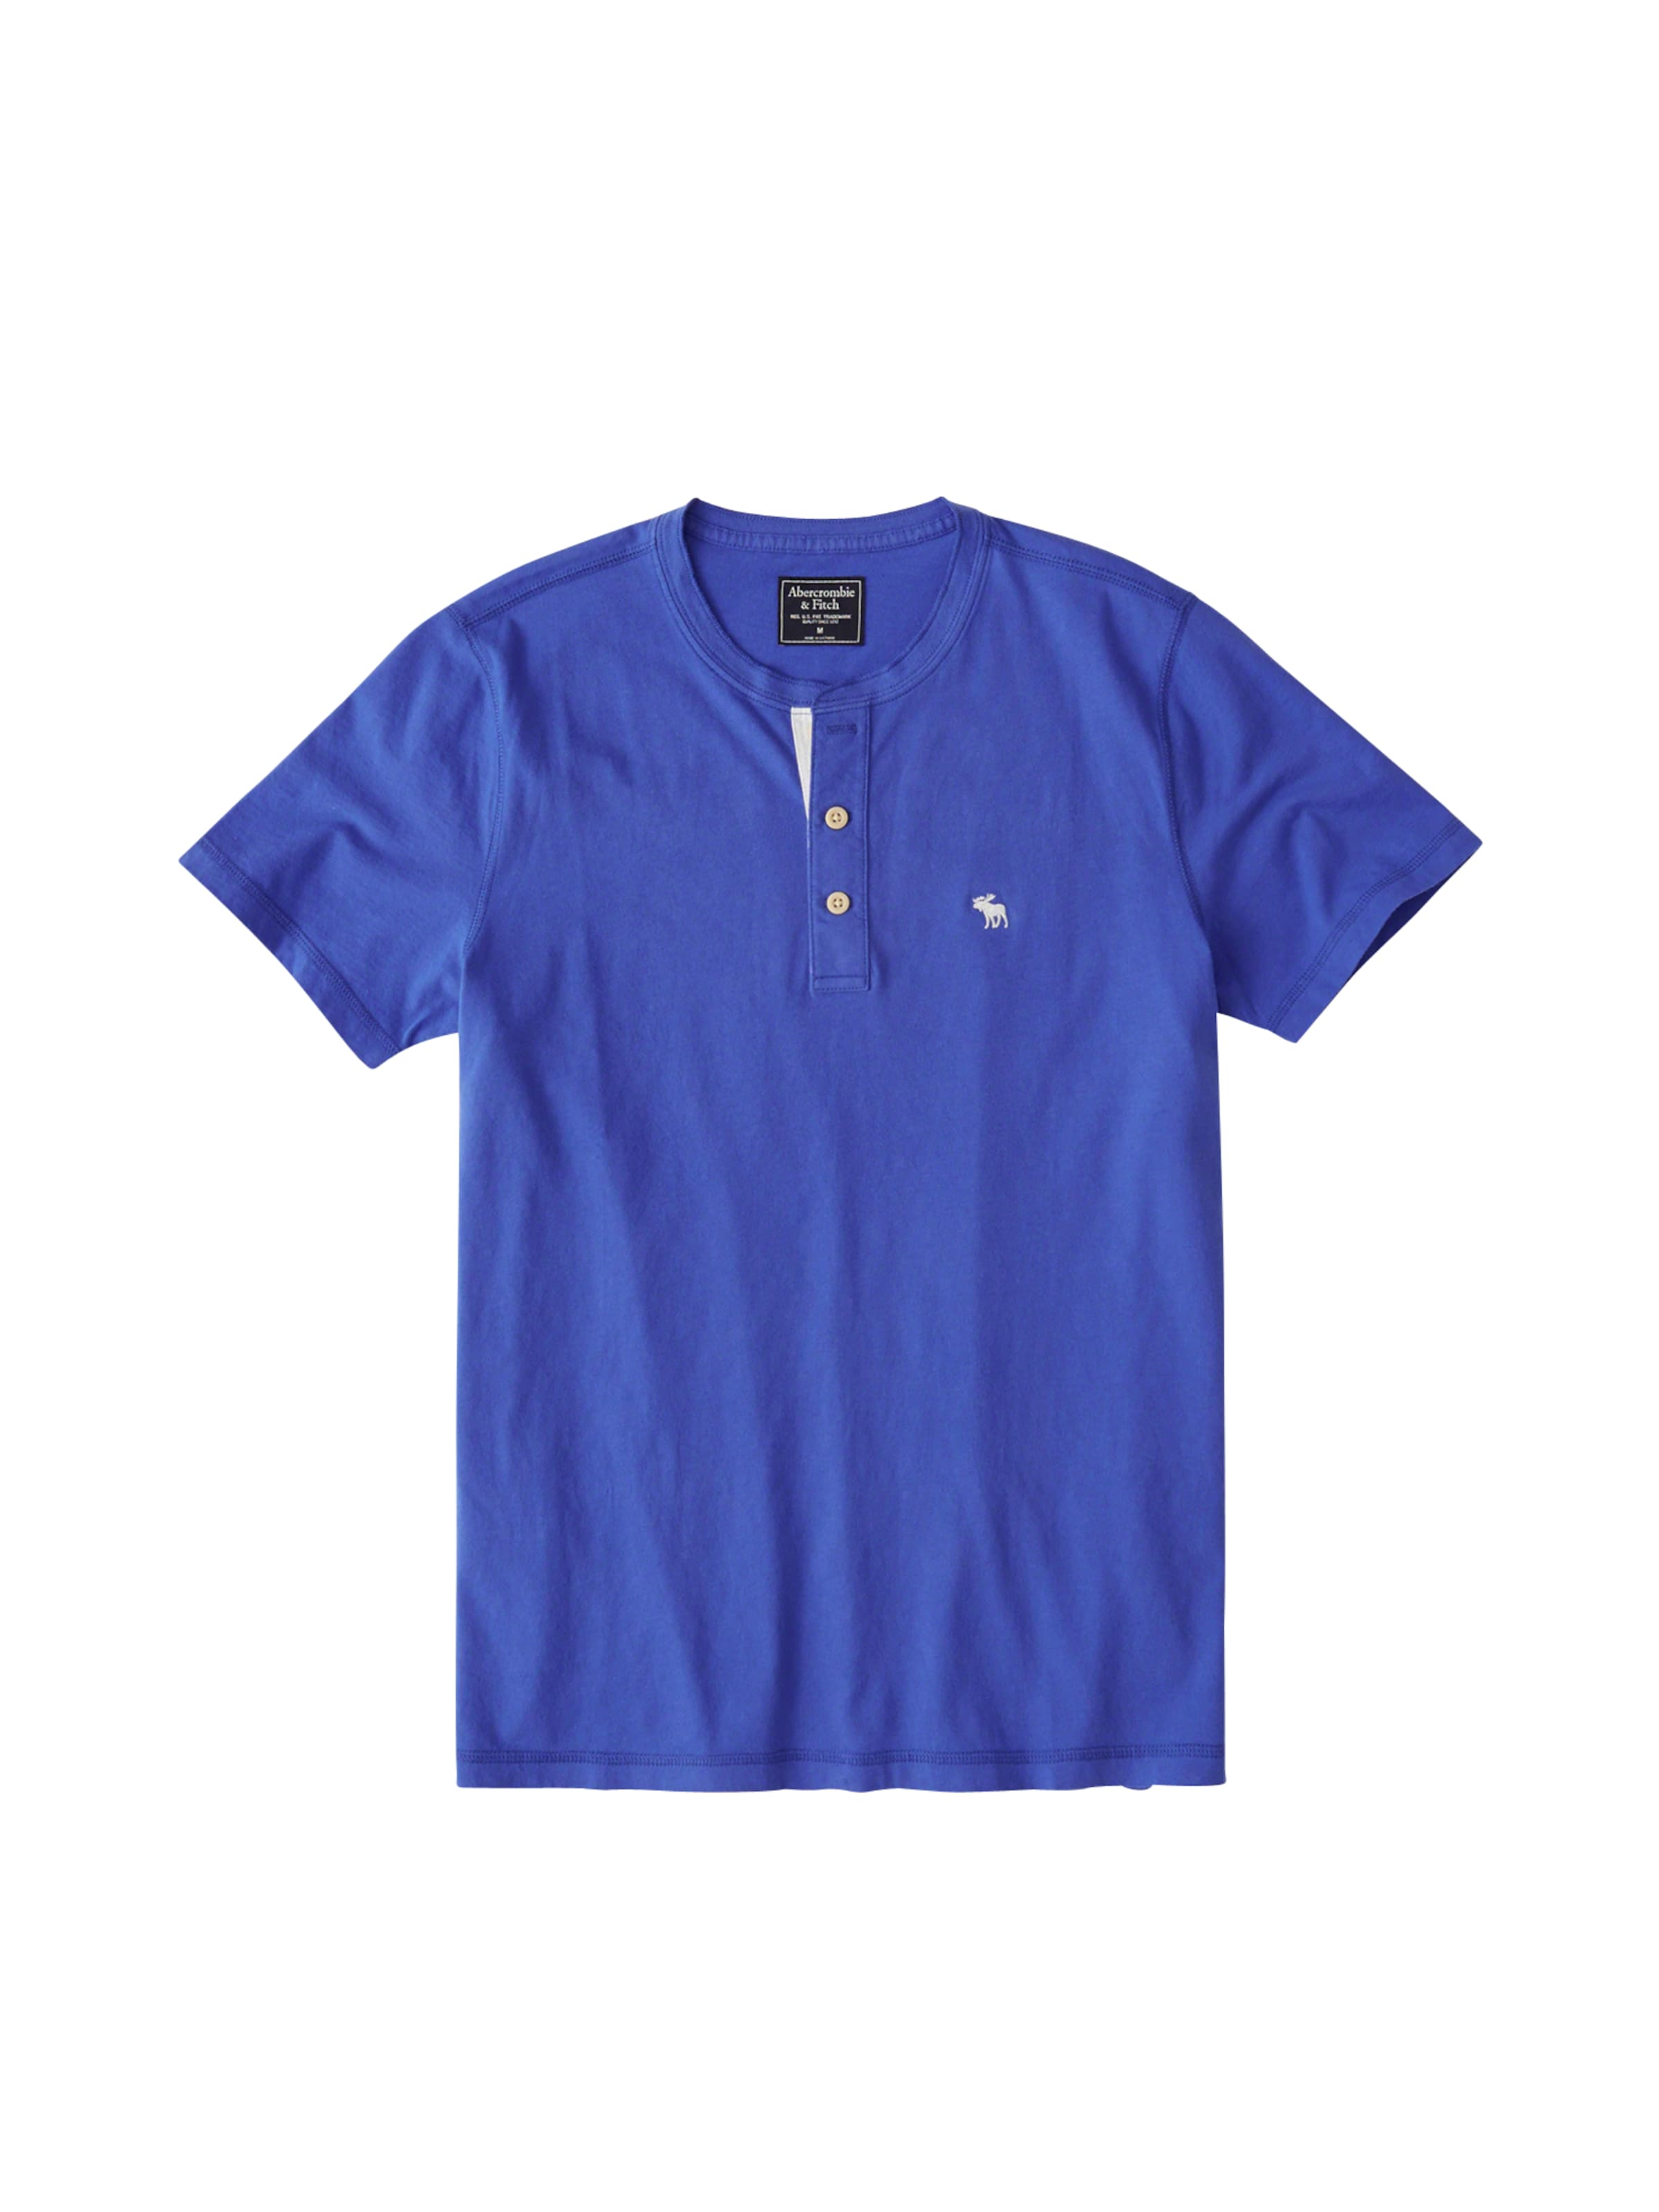 Henley' Shirt 'ss Blau Abercrombieamp; Fitch In OuPXkZi